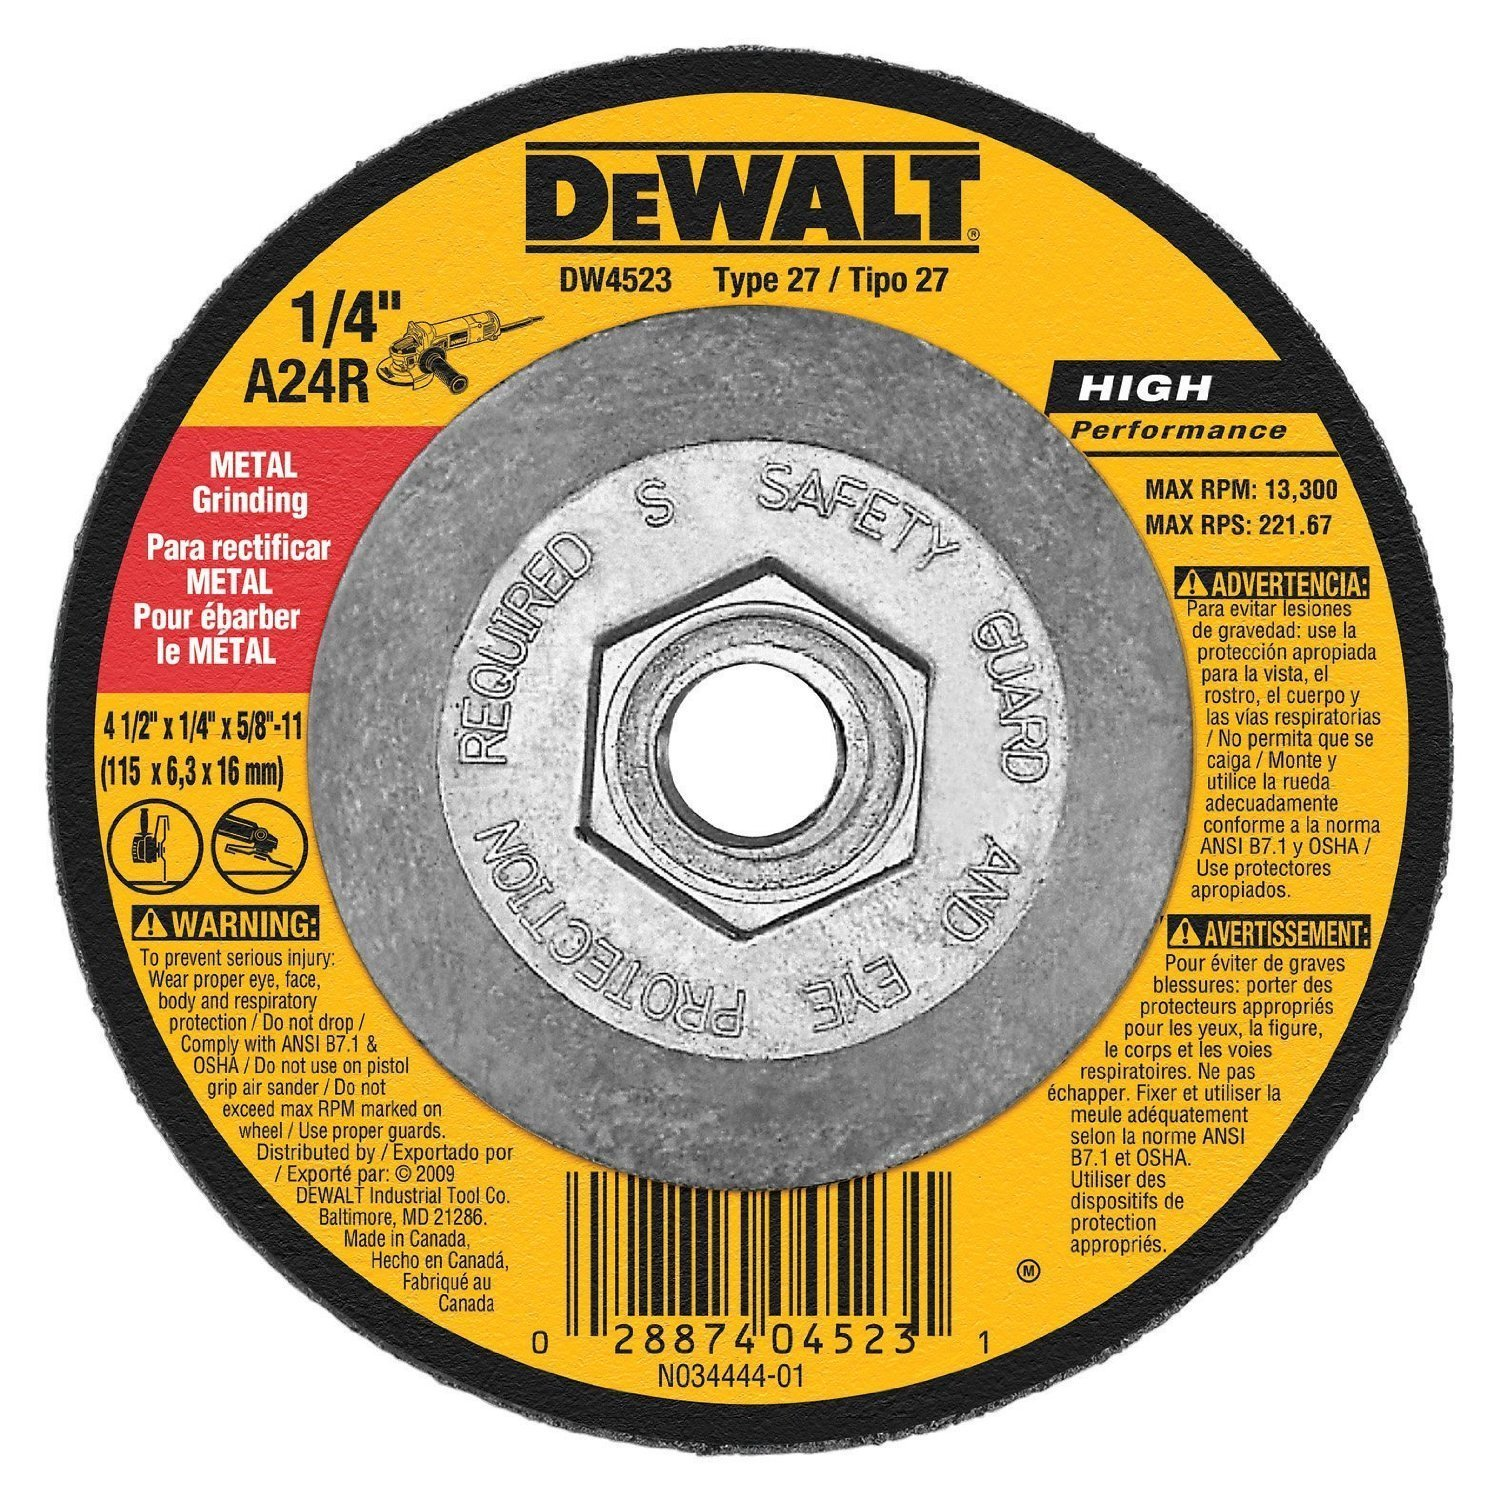 Dewalt DW4523 6 Pack 4-1/2-Inch by 1/4-Inch by 5/8-Inch General Purpose Metal Grinding Wheel Dewalt P.T.A.